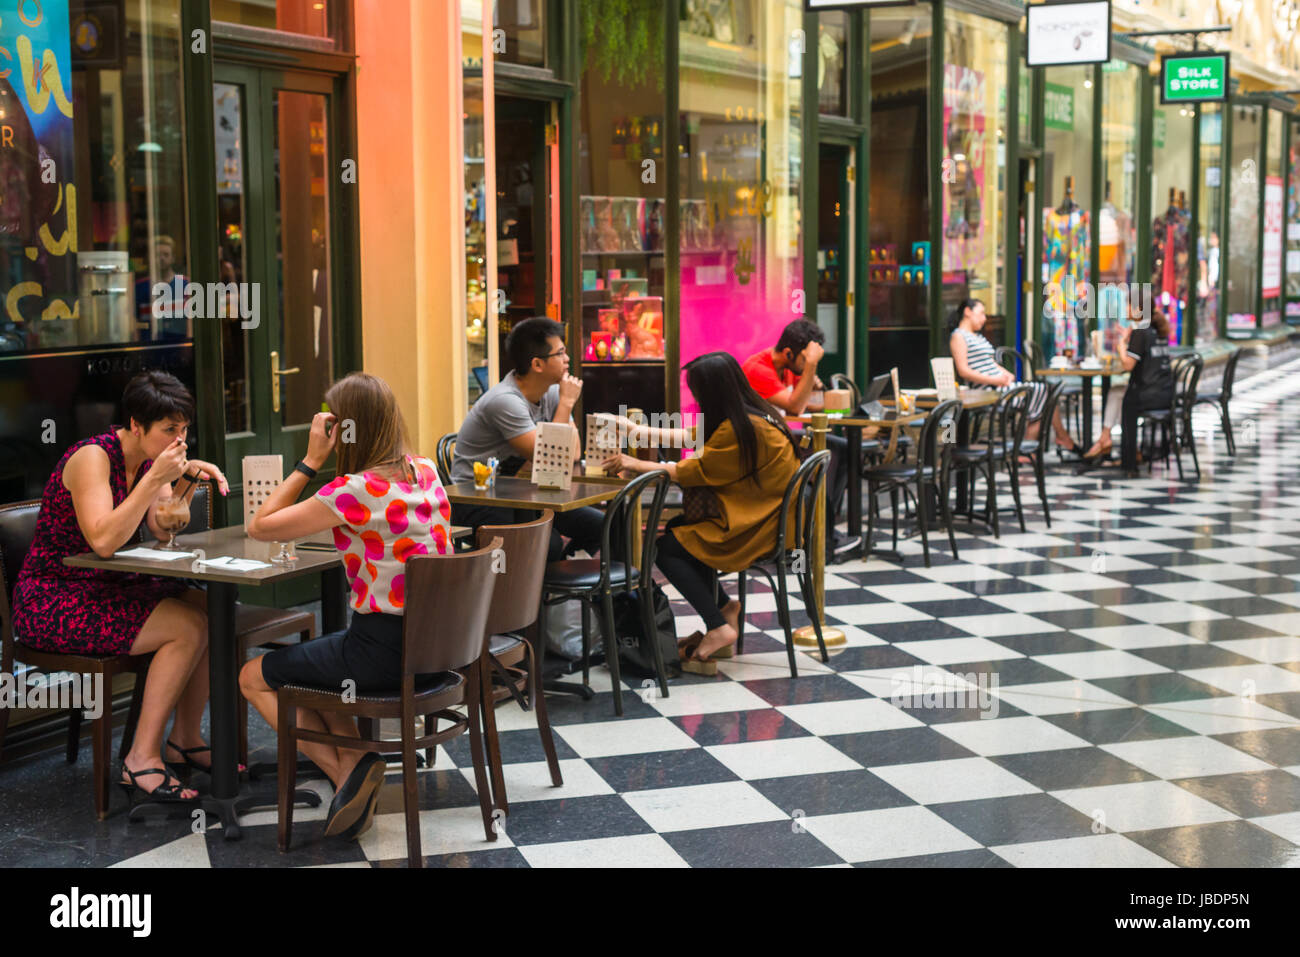 Cafe at the Royal Arcade, Bourke Street Mall, Melbourne VIC 3000, Australia - Stock Image